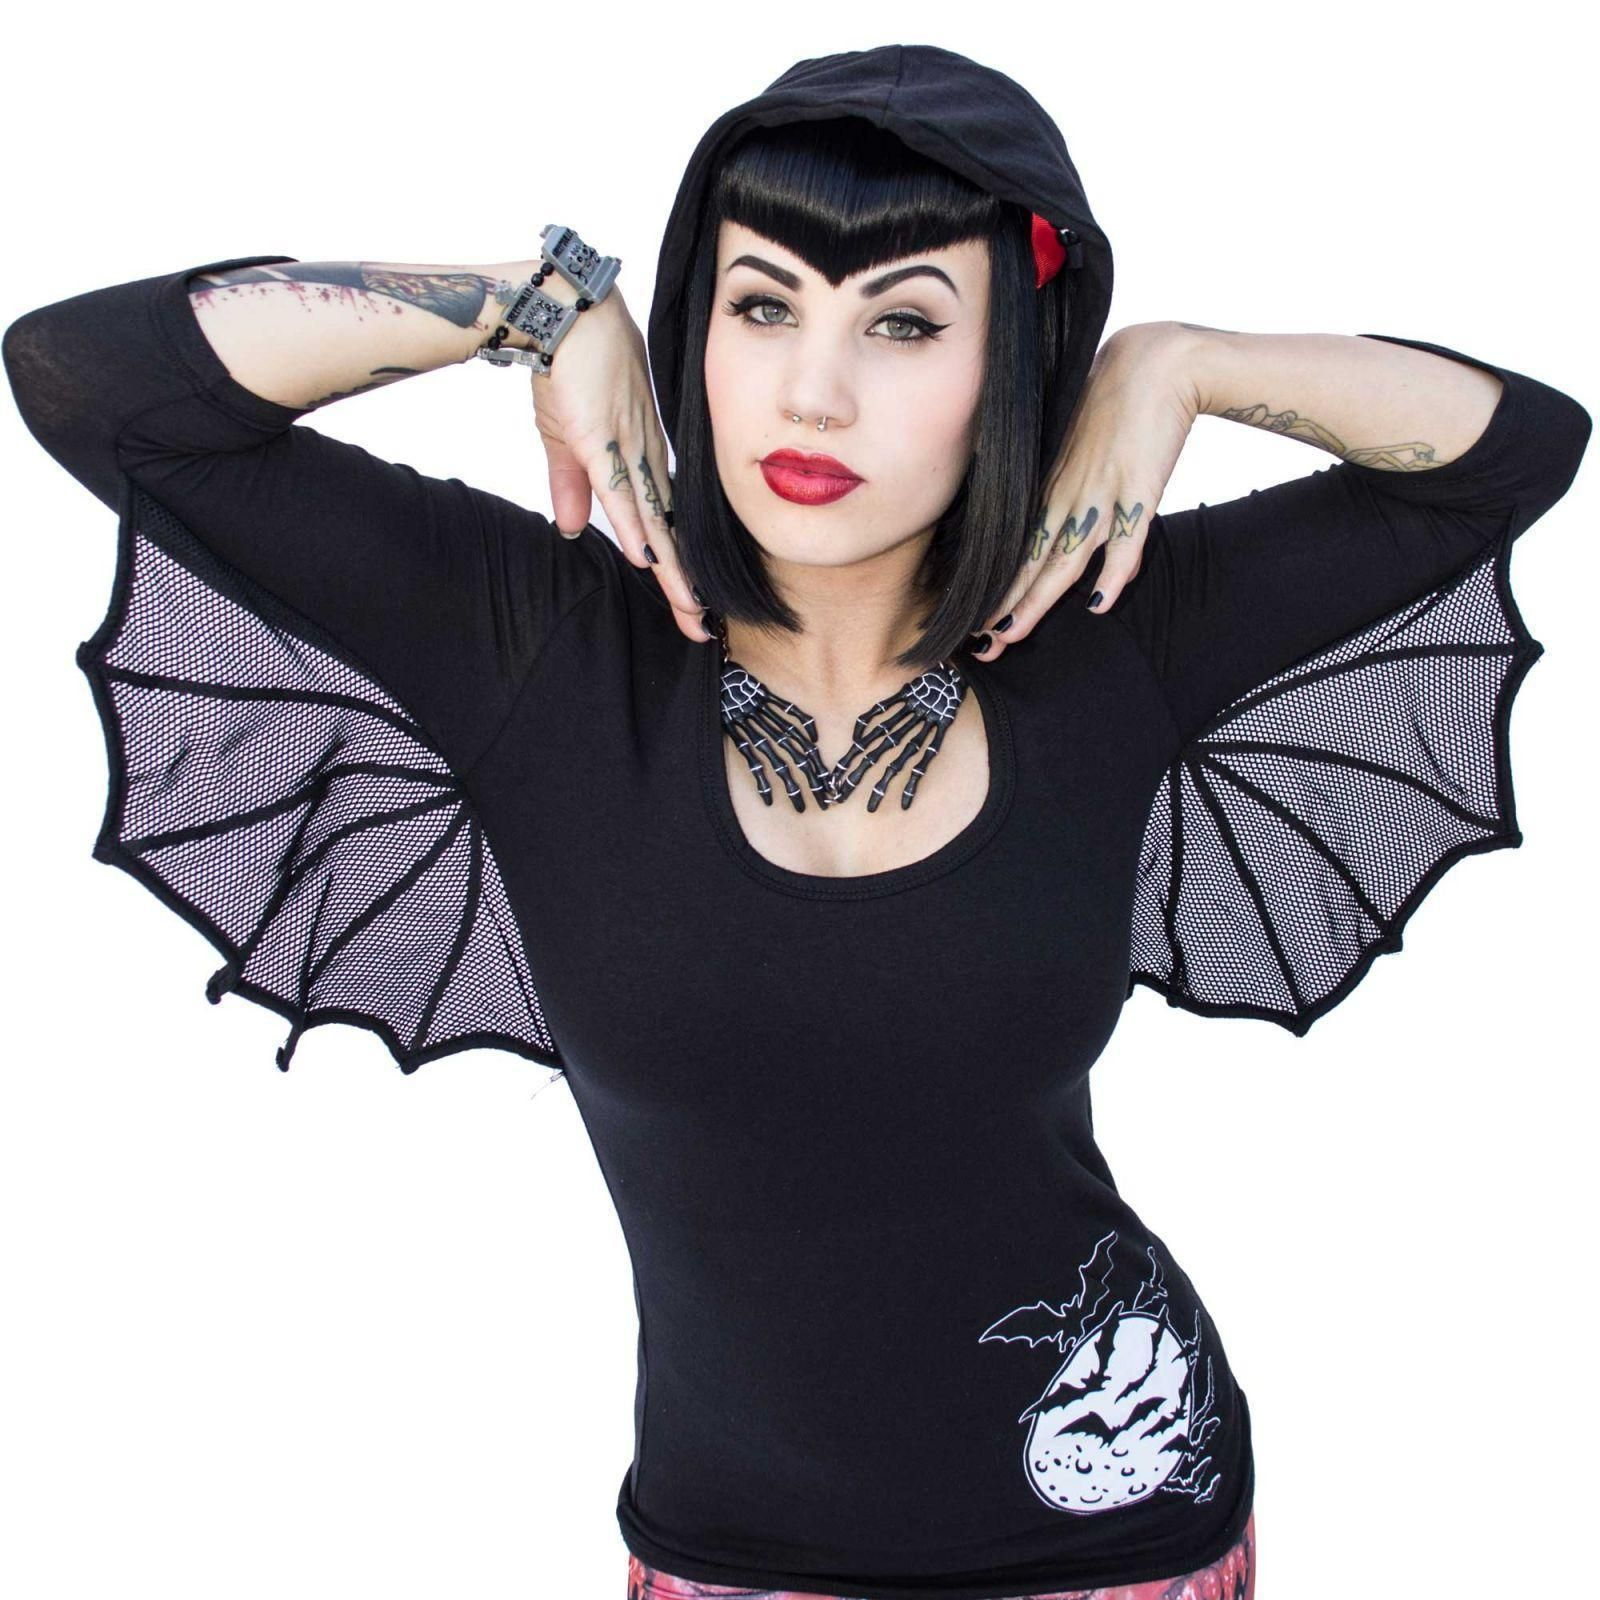 Bat Wing Hooded Tunic Top Black By Kreepsville 666 At Hell S Boutique Cotton Lycra With V Detail On Sleeves And